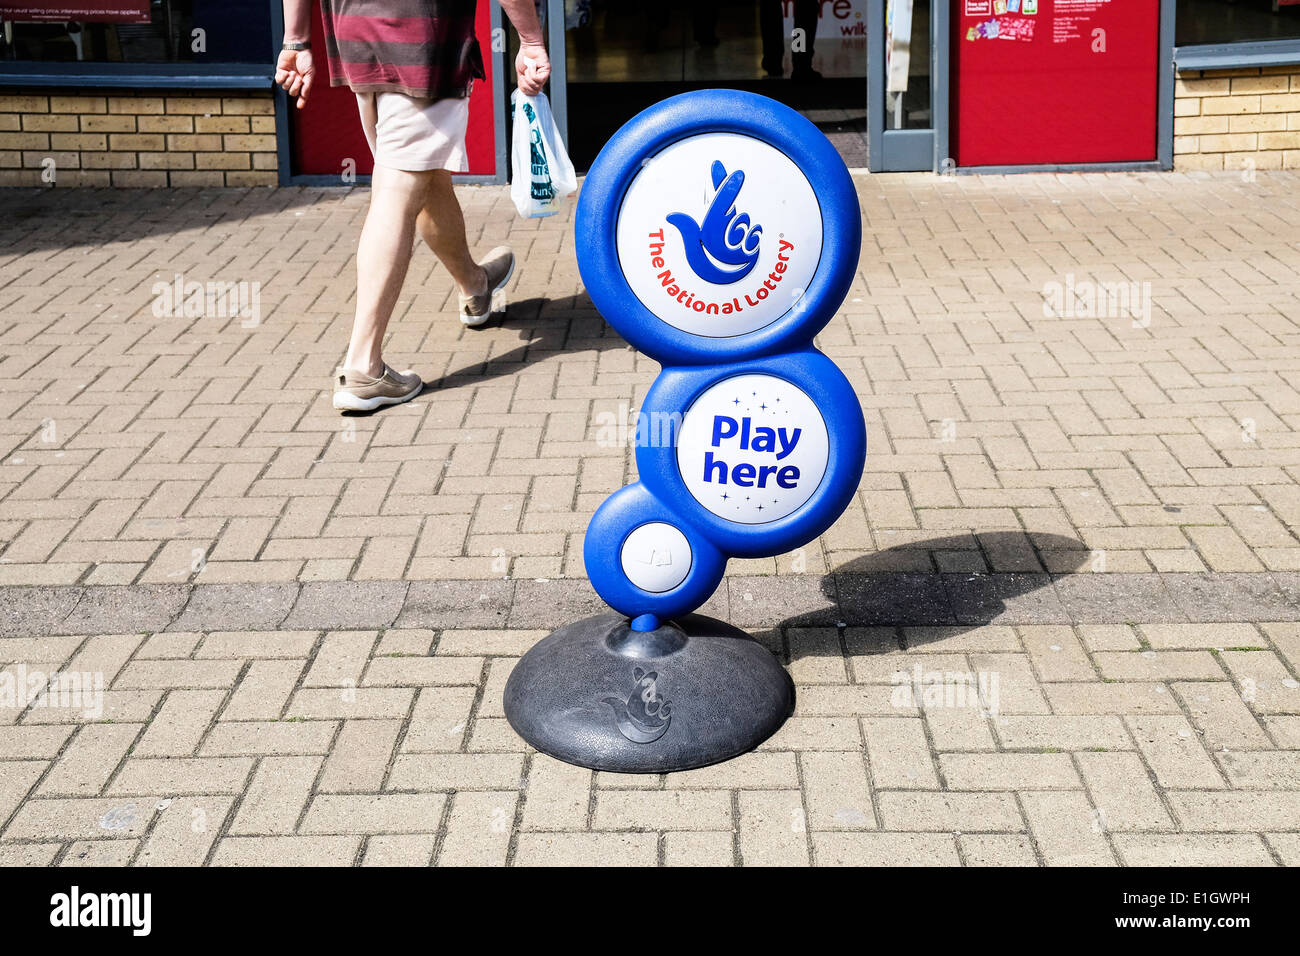 The symbol for the National Lottery. - Stock Image